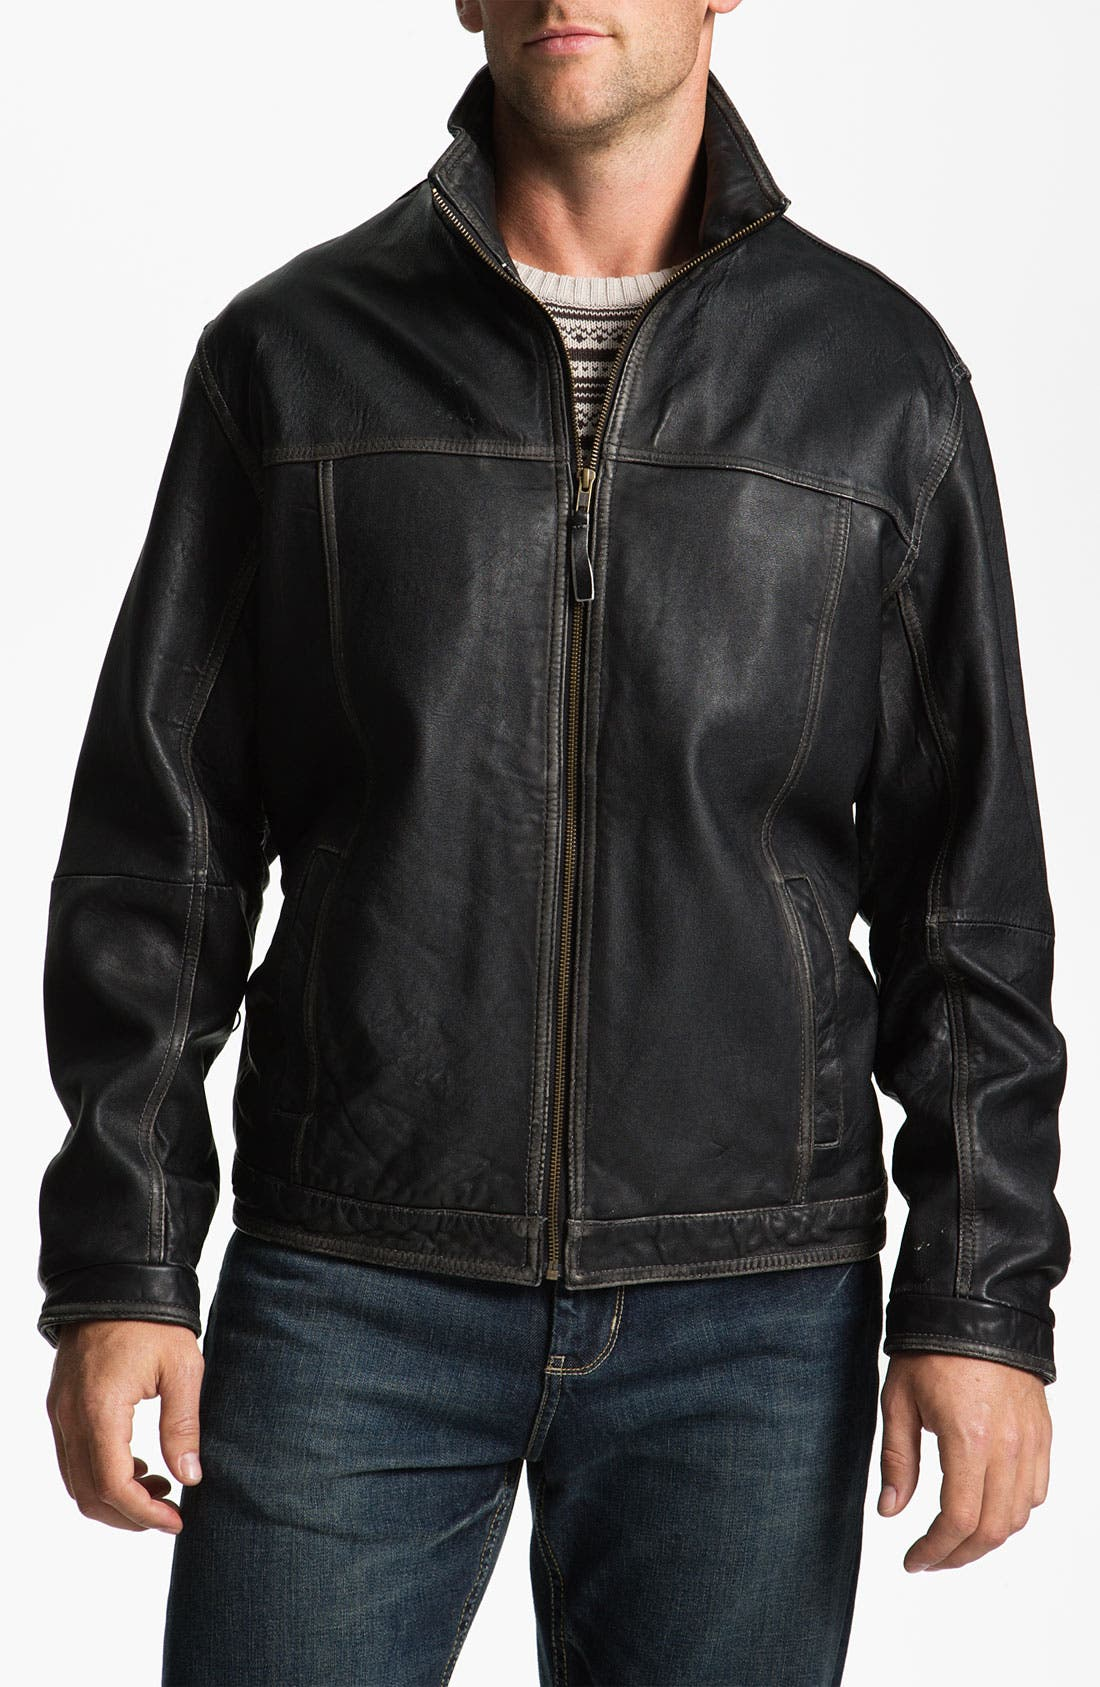 Alternate Image 1 Selected - Tommy Bahama Denim 'Rocker Canyon' Jacket